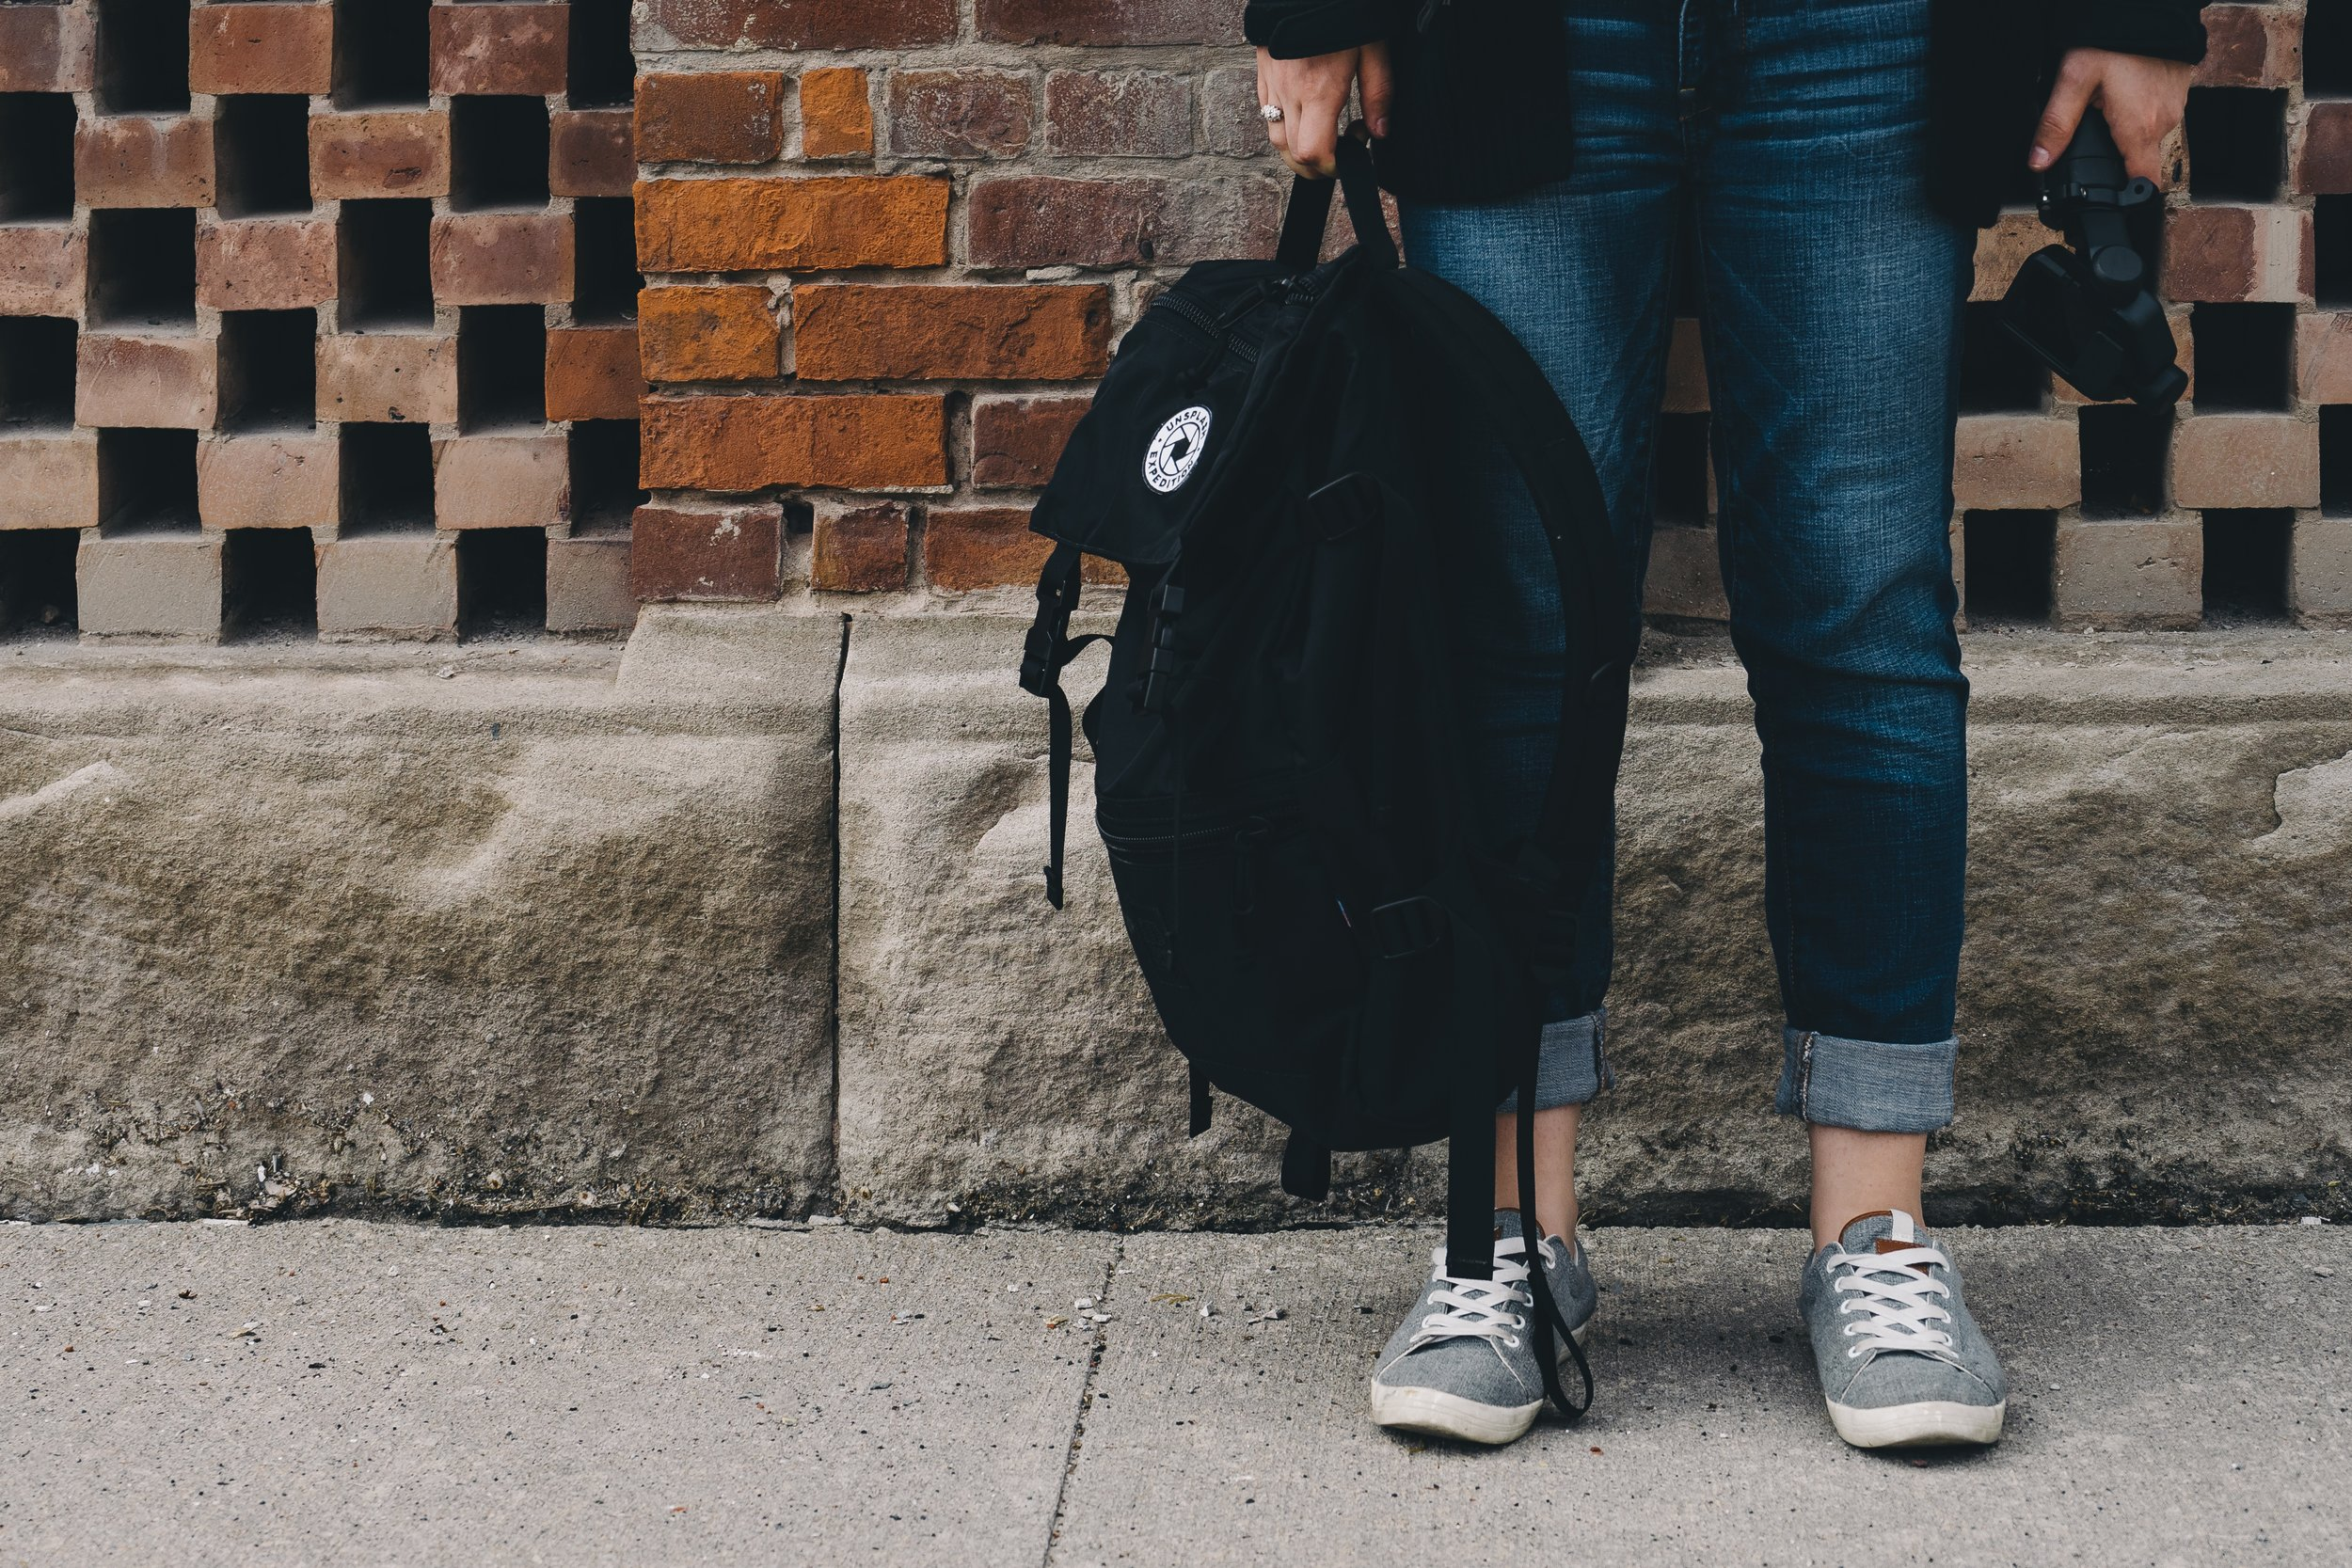 Myths about gender identity confusion during puberty and growing out of gender dysphoria can make it harder for teens to get adequate mental health support.